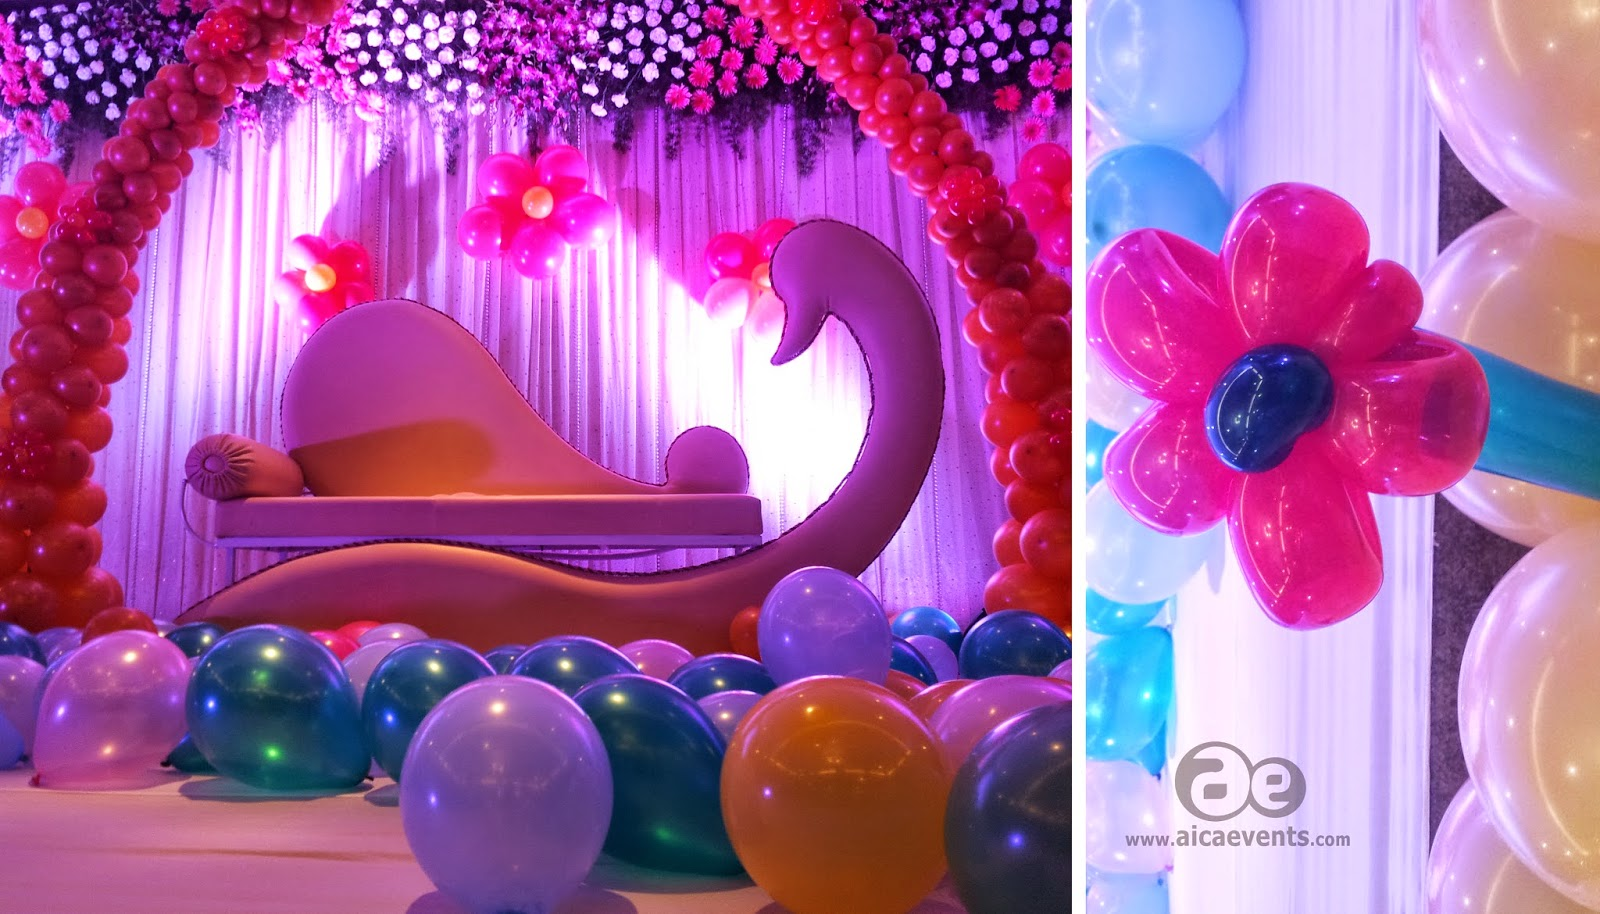 Here Are Some Pics Of Balloon Decoration For Birthday Party Did At Rajahmundry In The Month December